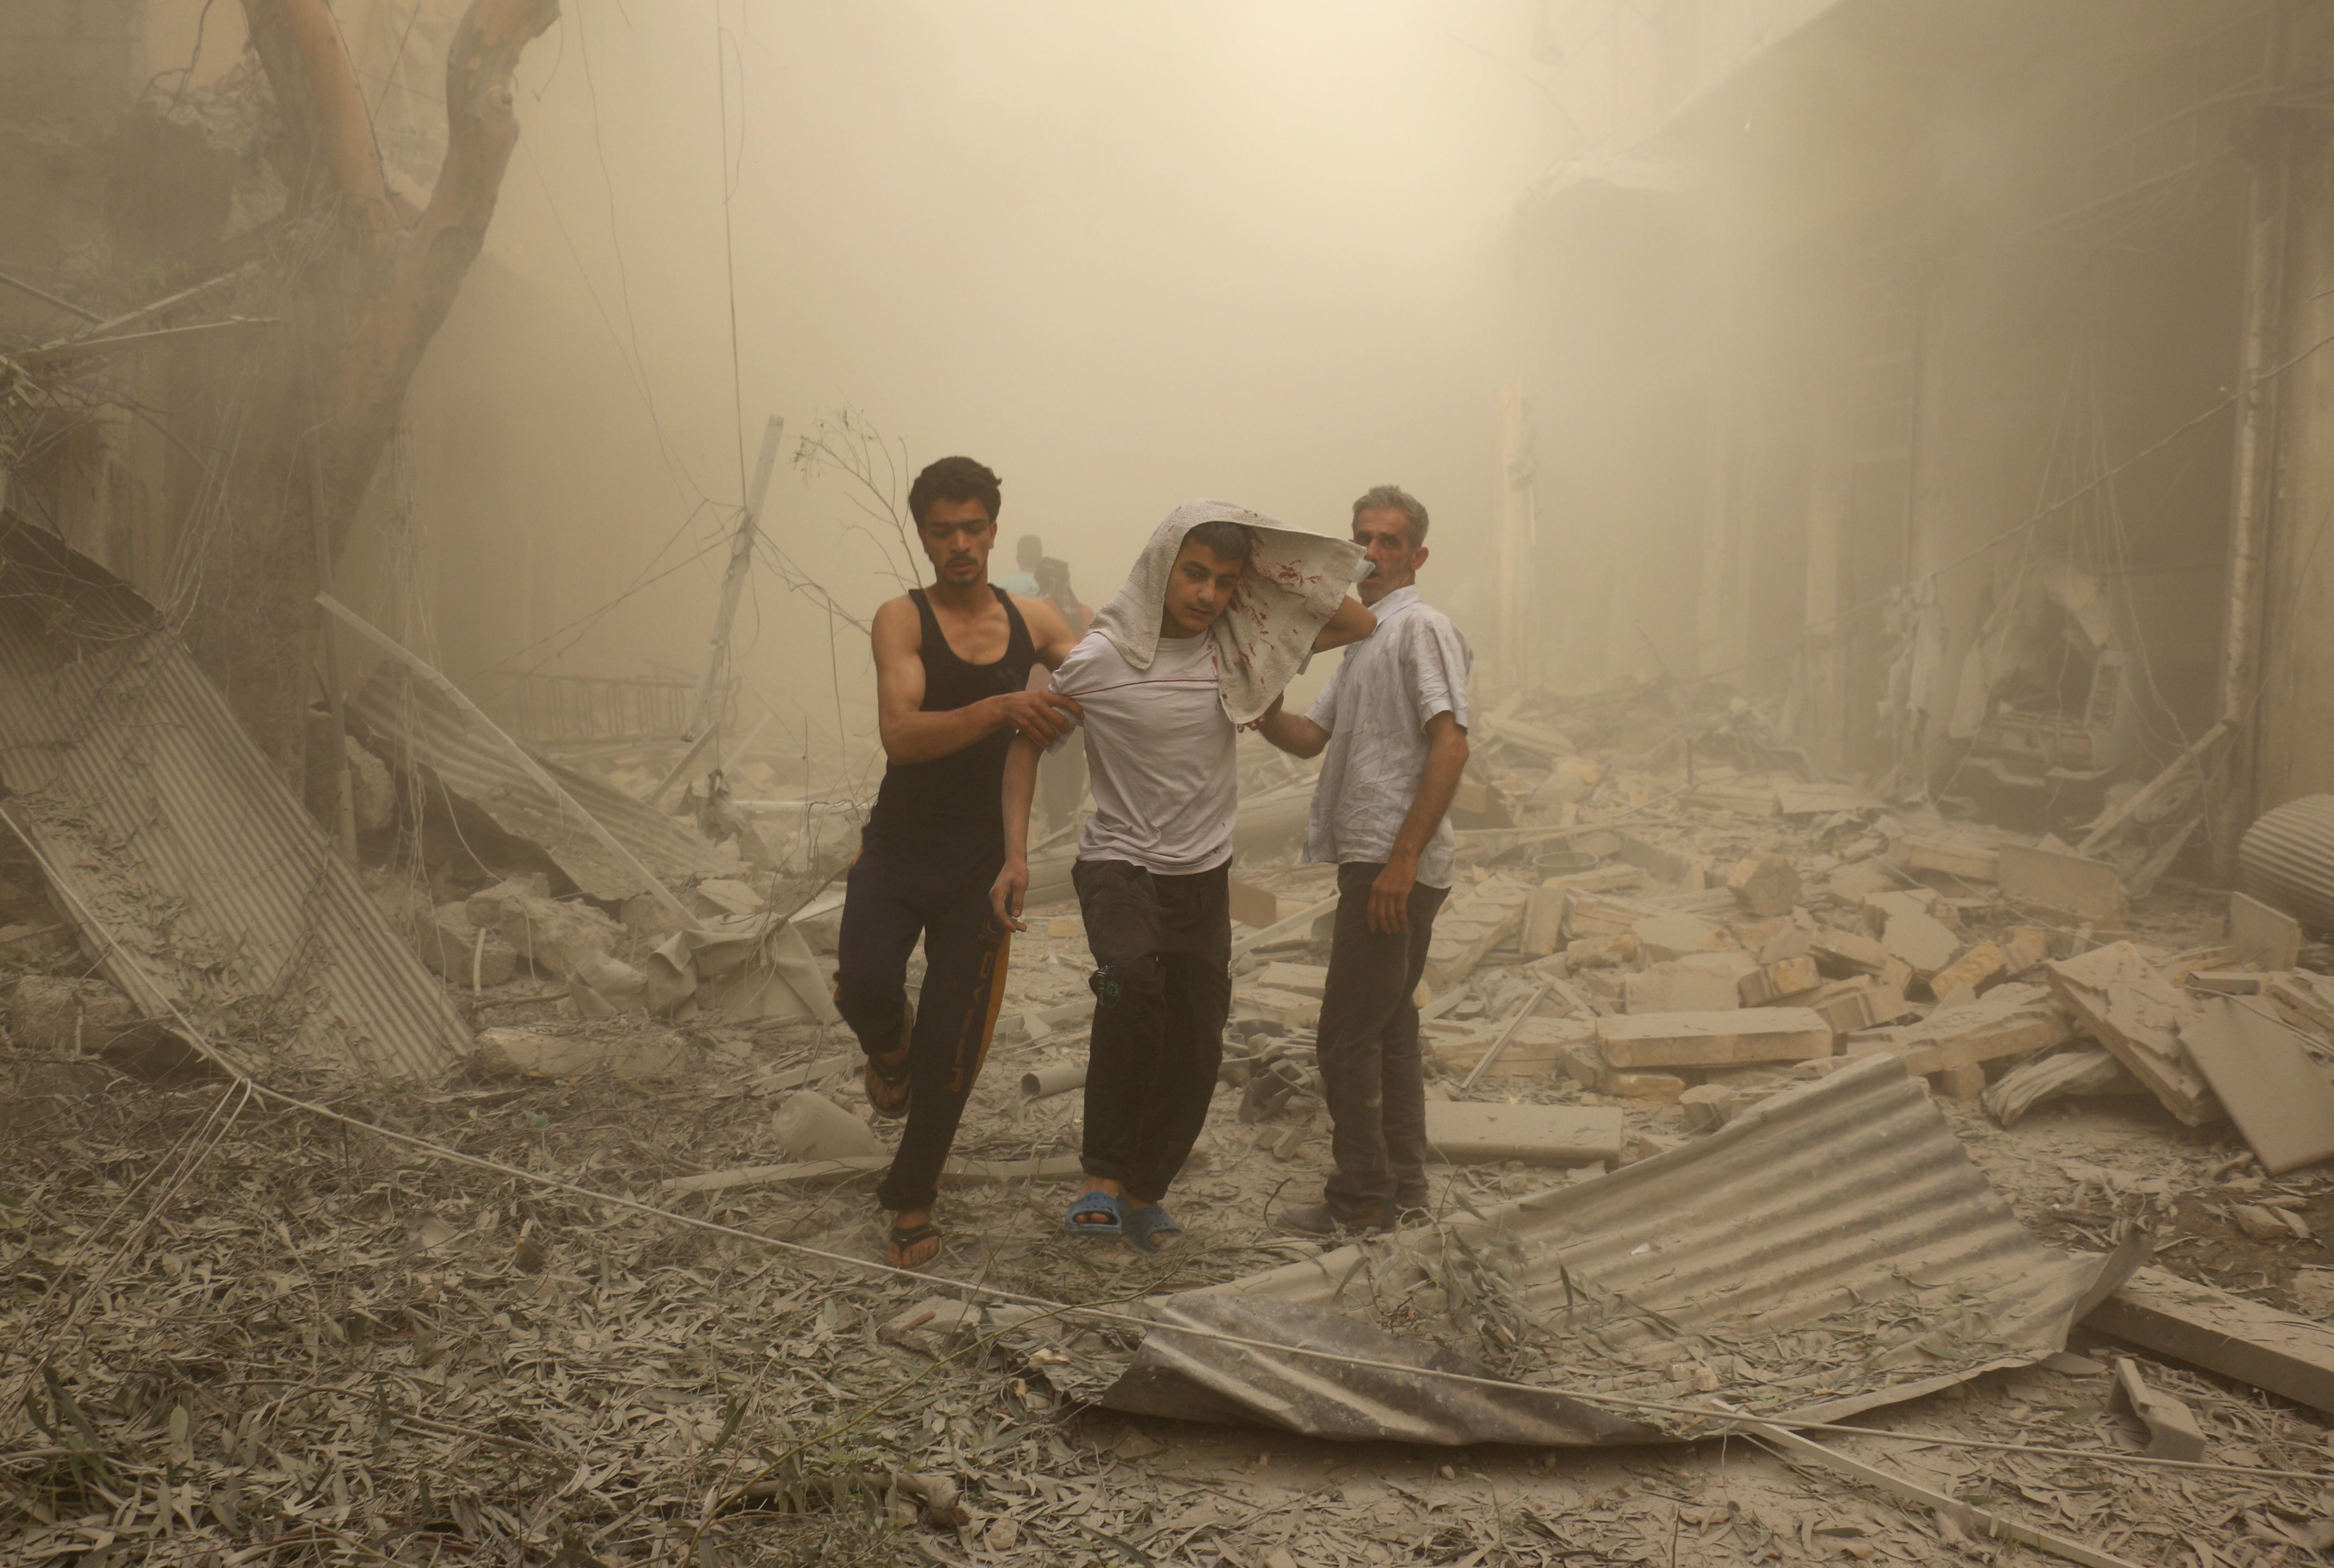 Syrians help a wounded youth after an airstrike on the al Fardous rebel-held neighborhood of Aleppo.